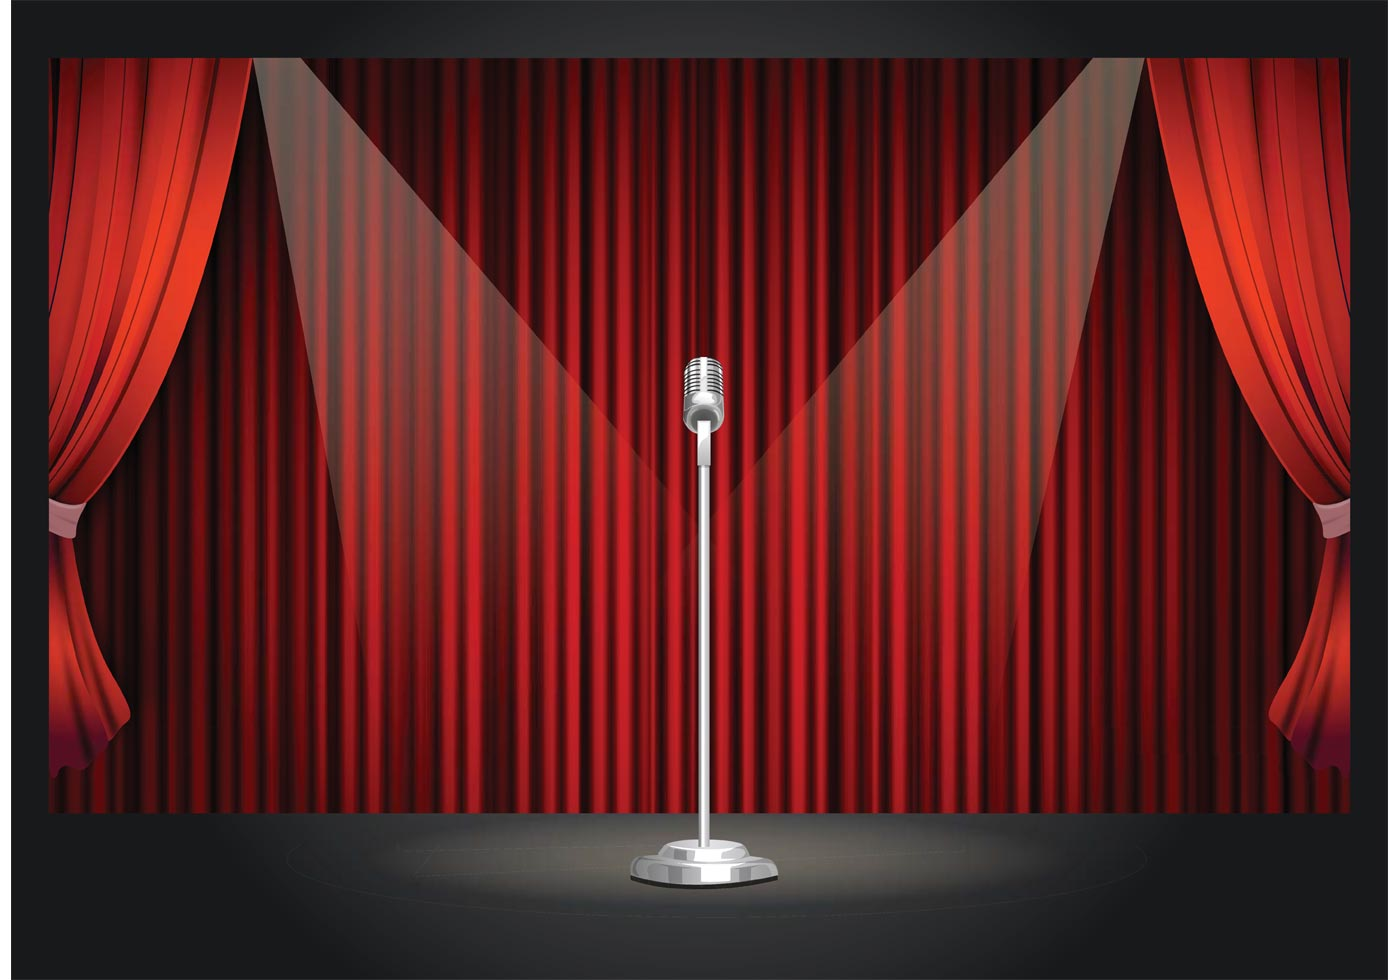 Pics photos theatre curtain red gold black background - Free Vector Retro Theater Stage Download Free Vector Art